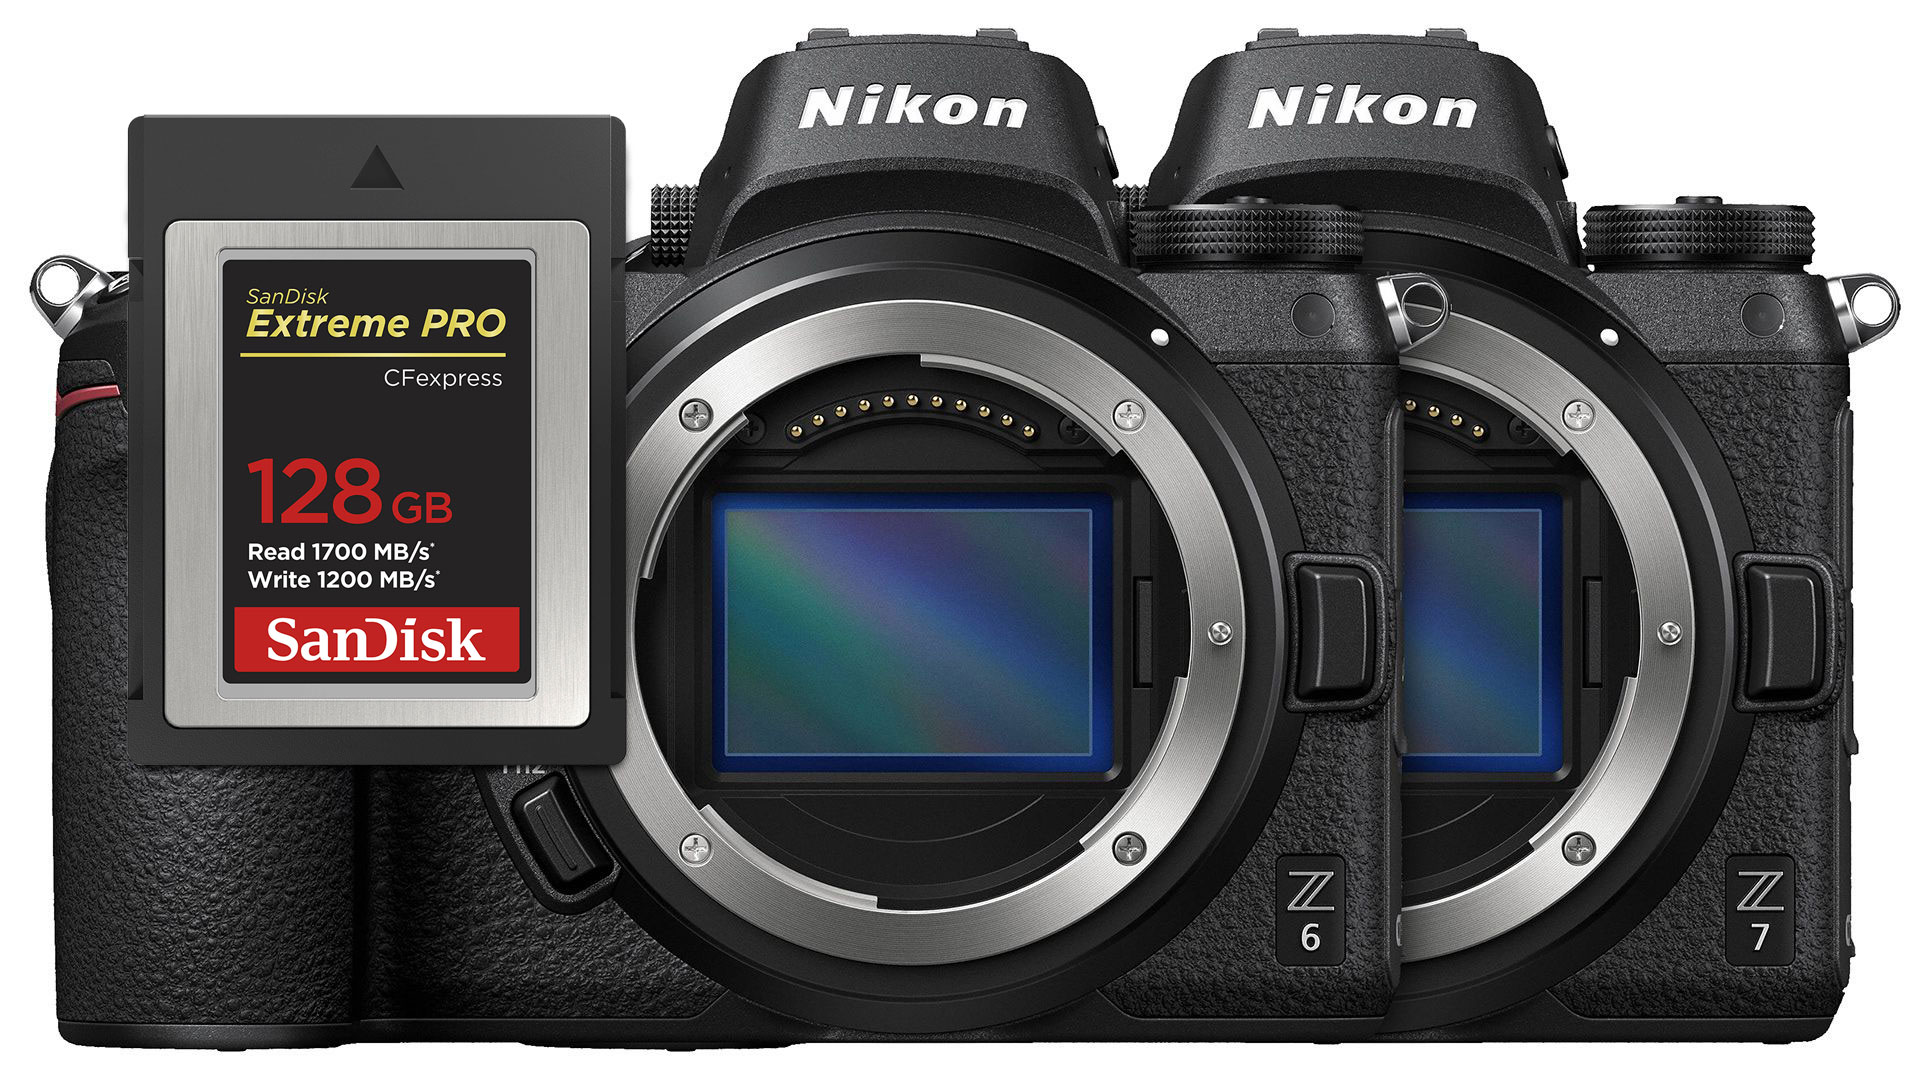 New Firmware Brings CFExpress Support to the Nikon Z6 and Z7